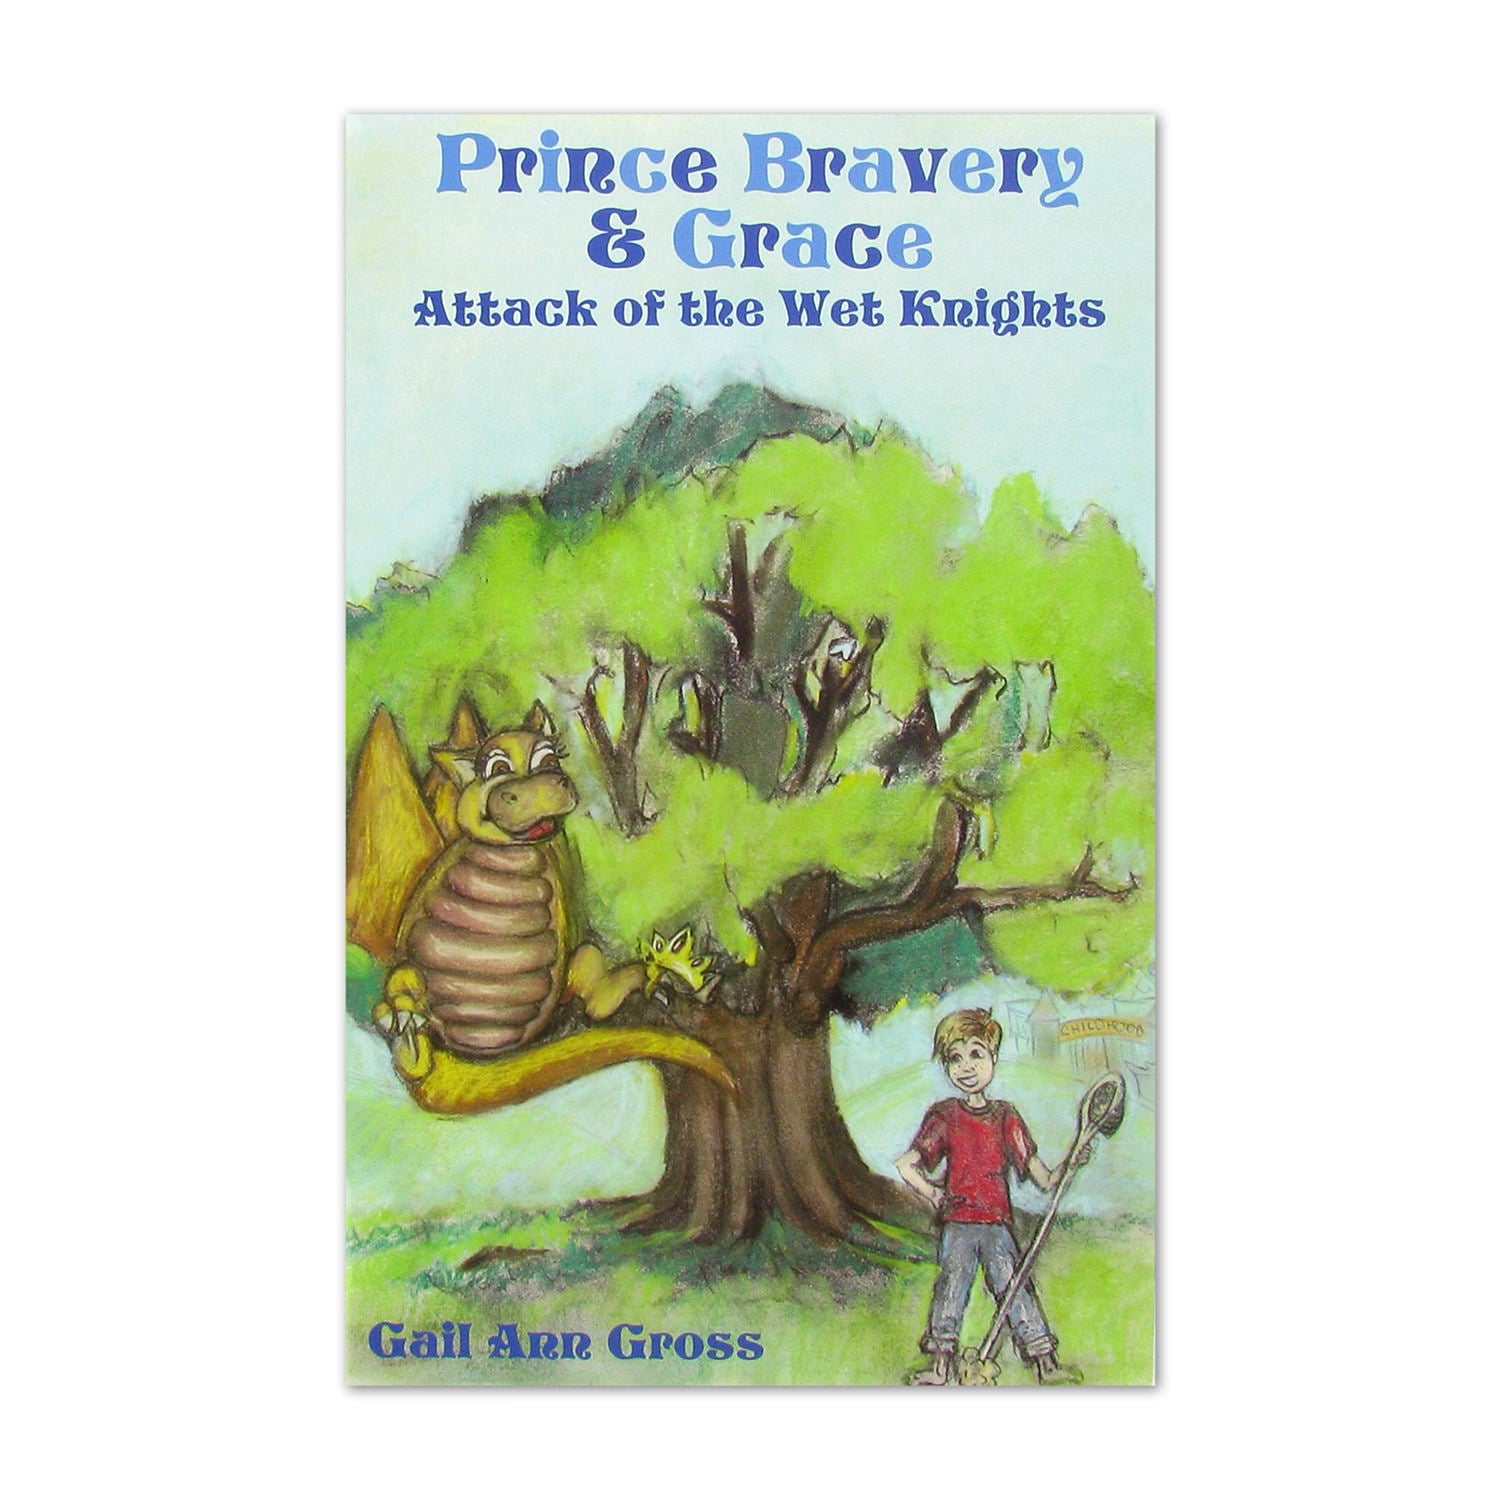 Prince Bravery & Grace: Attack of the Wet Knights